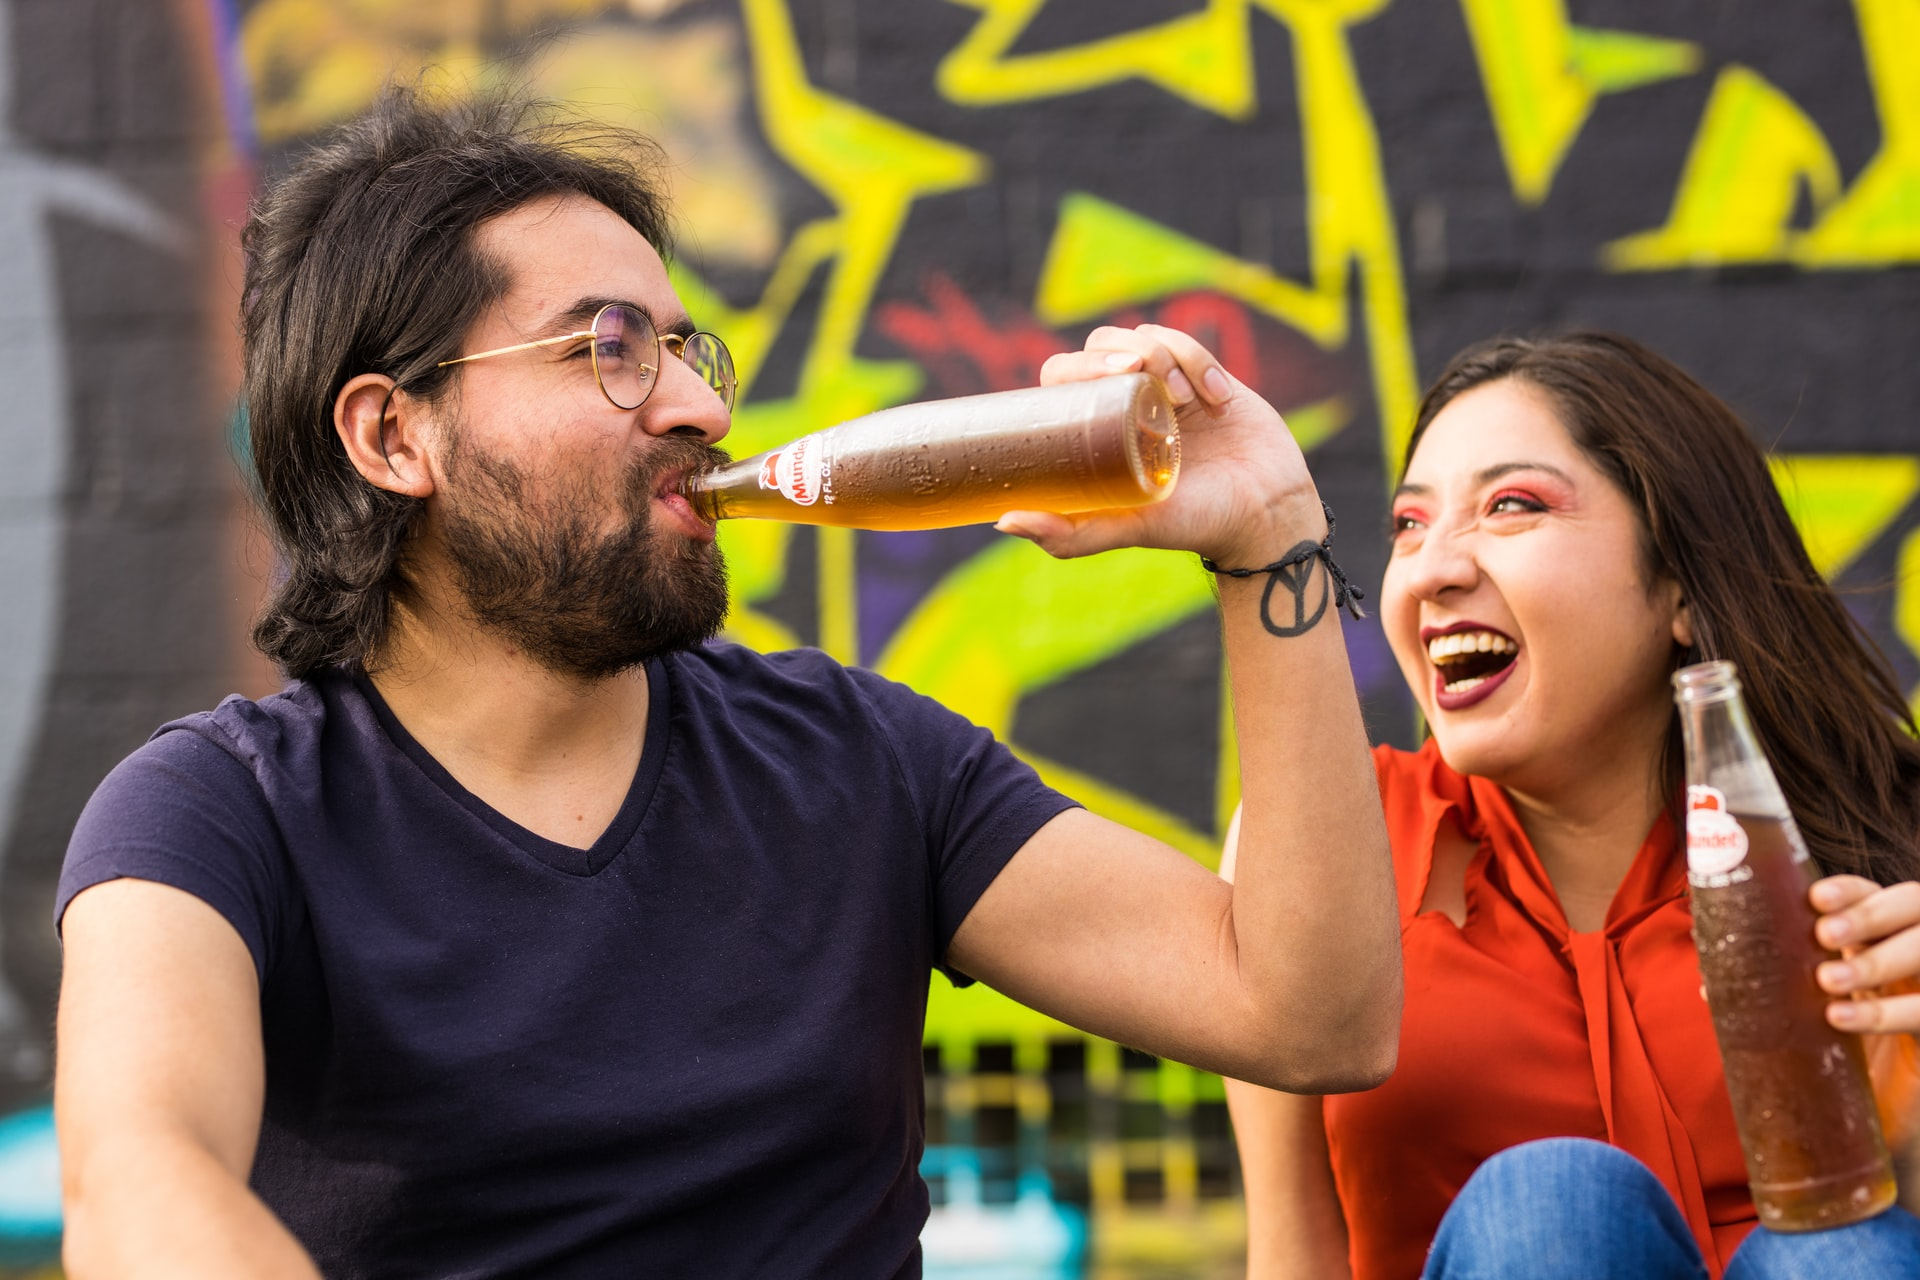 A photo of a couple. One person is drinking out of a glass bottle while the other laughs